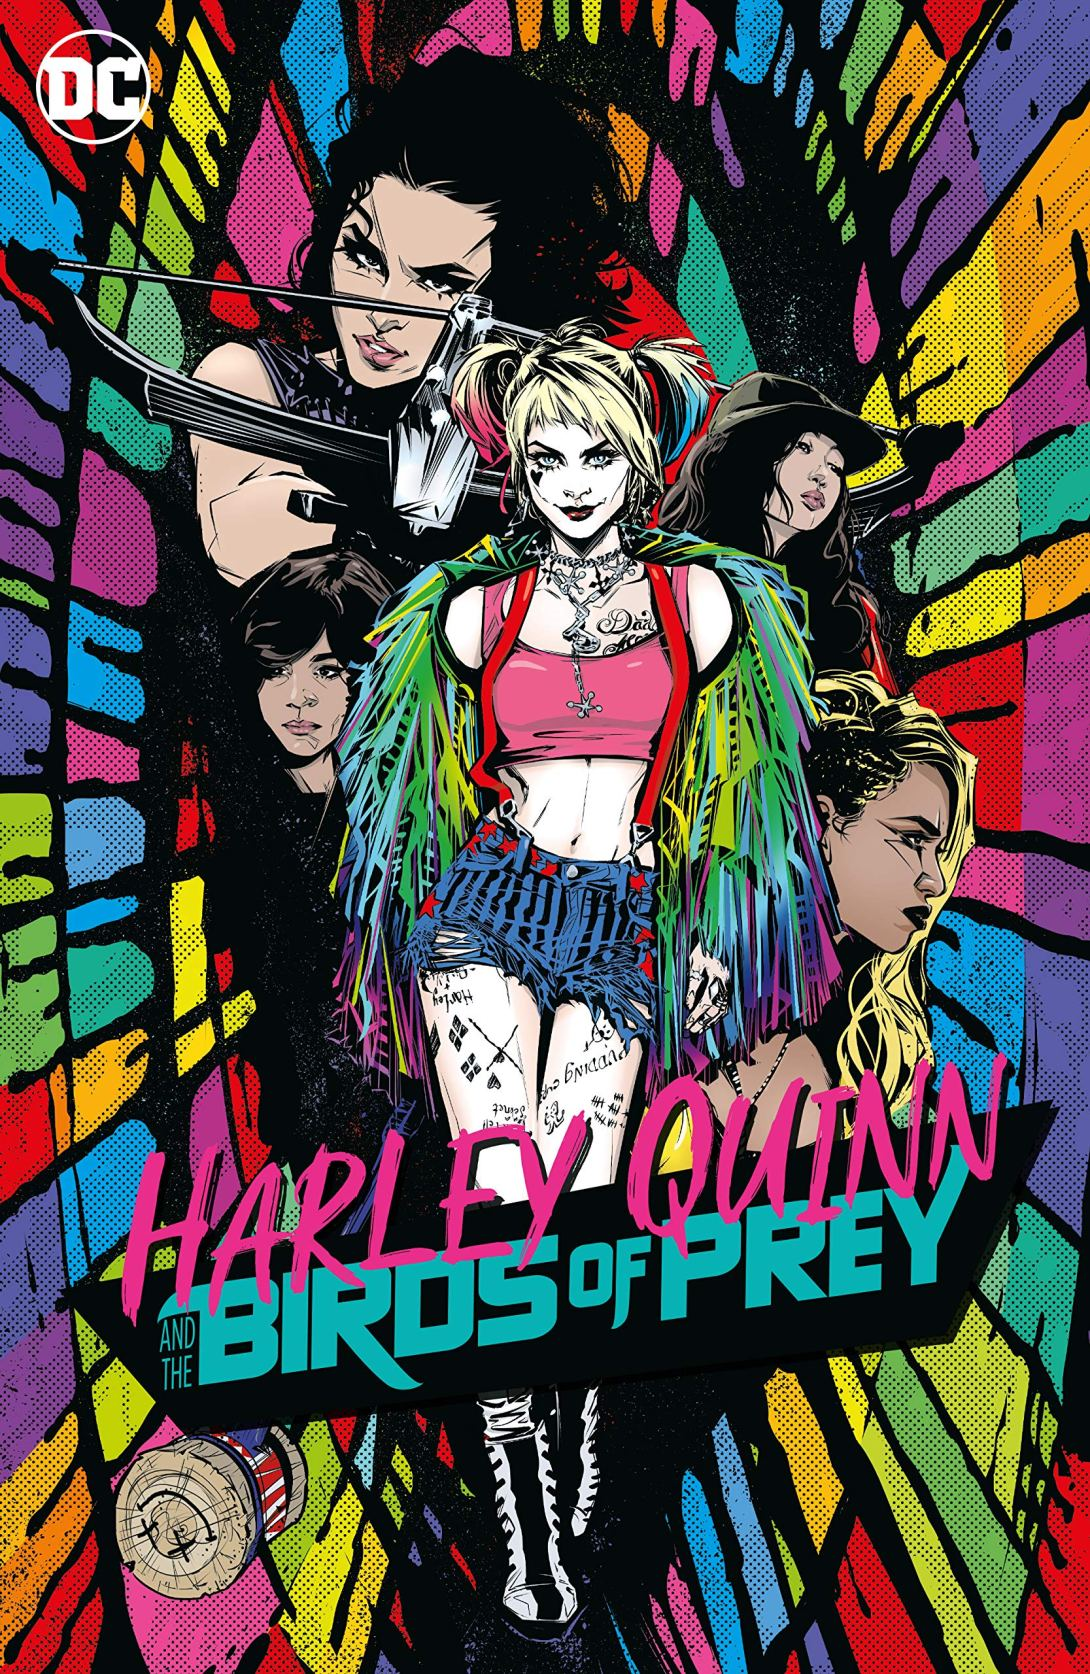 Harley Quinn Birds of Prey graphic novel